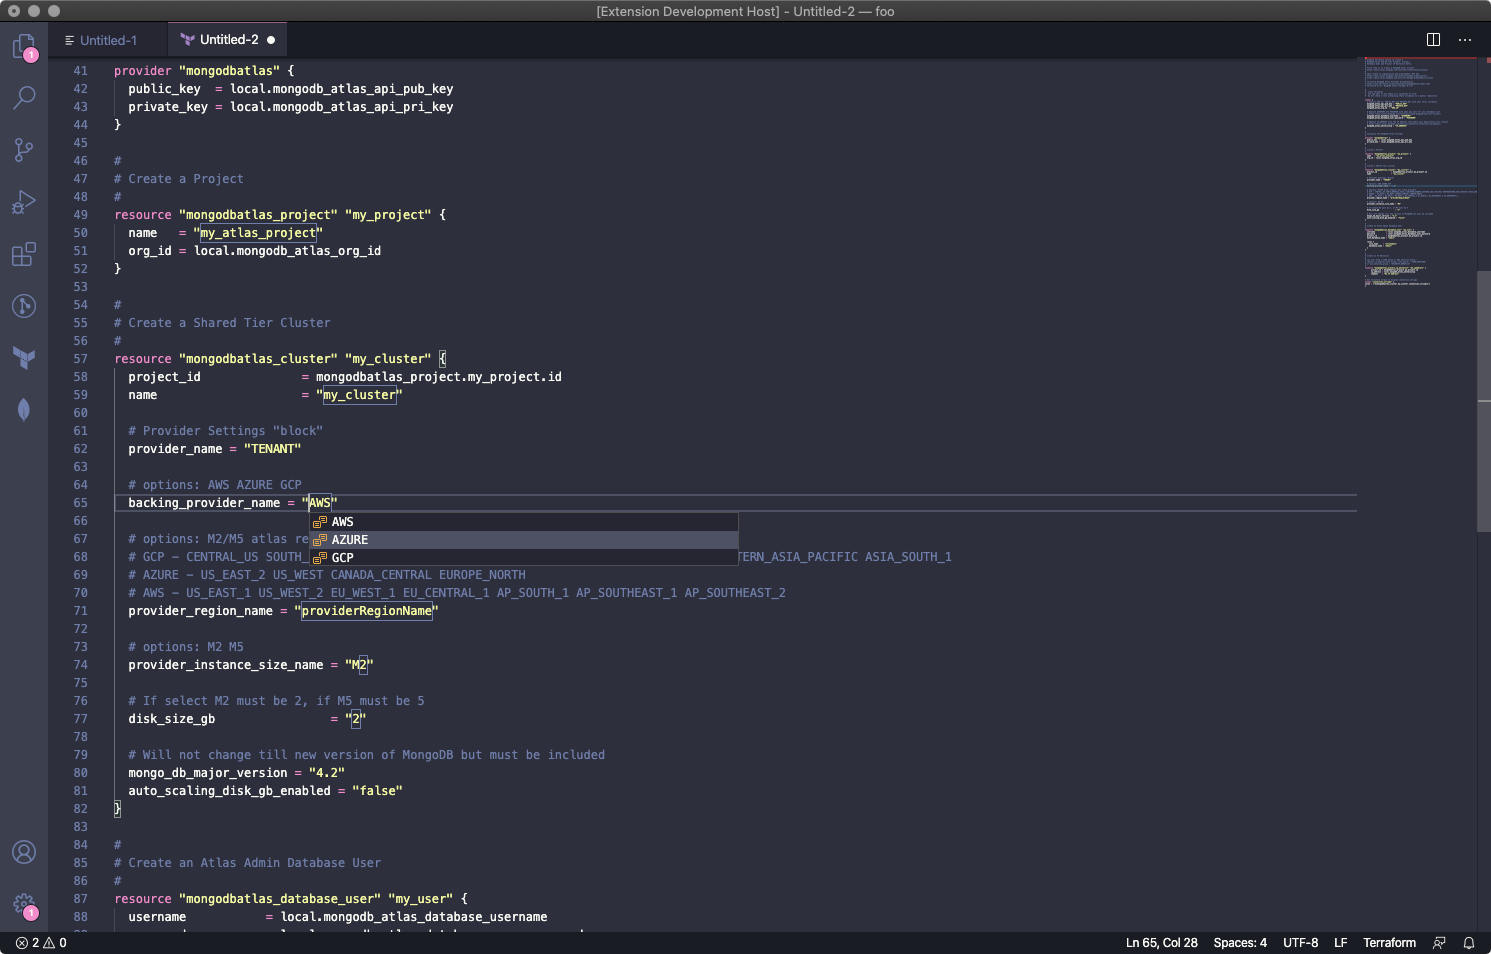 Screenshot showing the Terraform capabilities of the MongoDB VS Code Plugin.